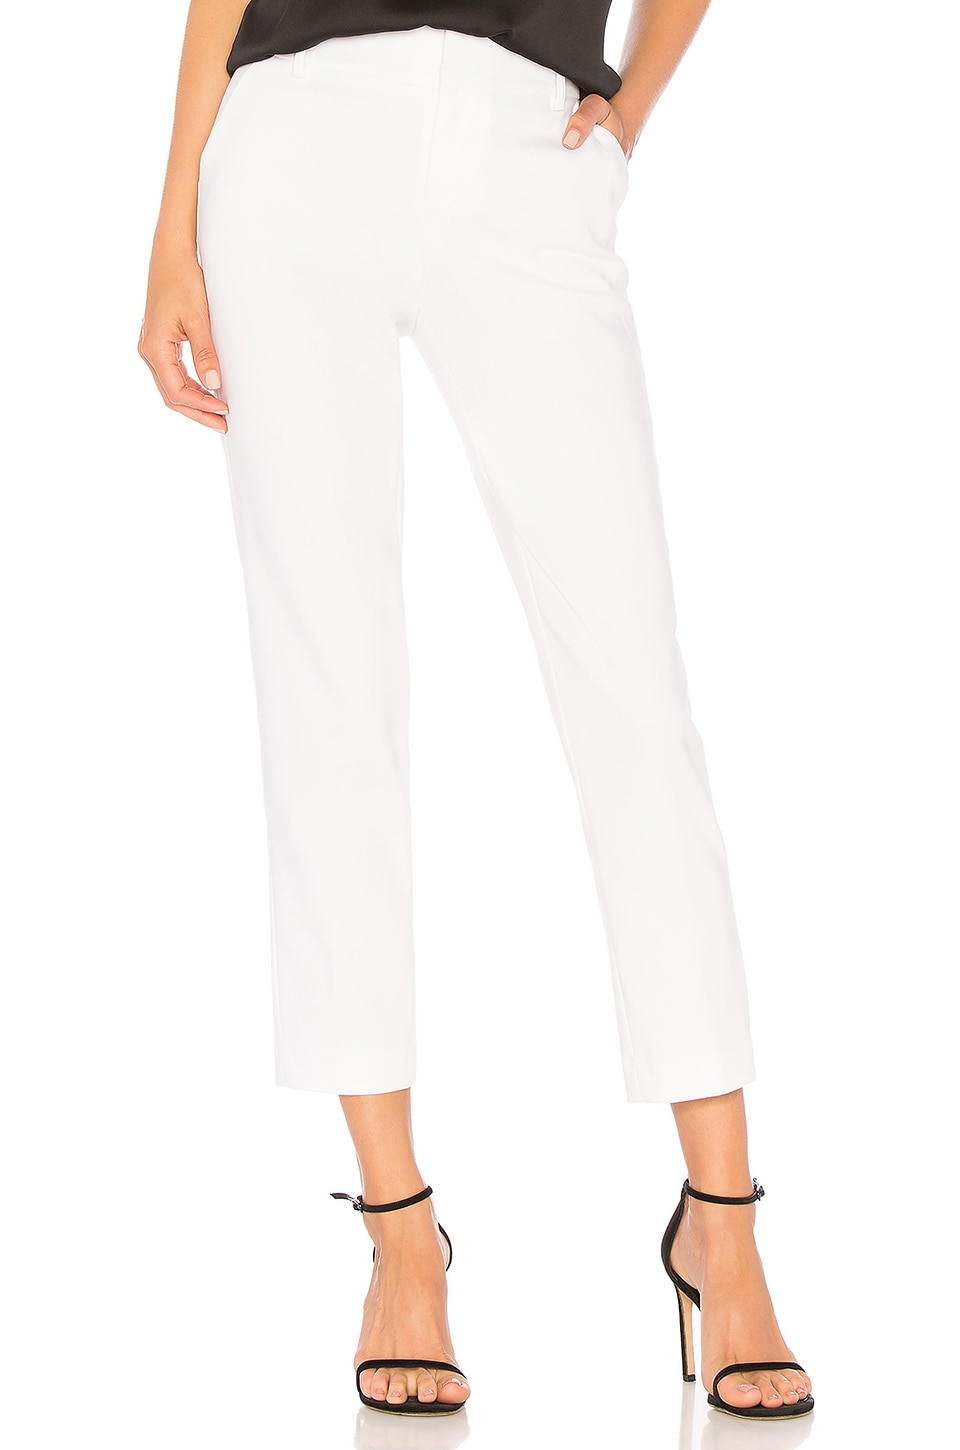 Alice + Olivia Stacey Slim Trouser in White